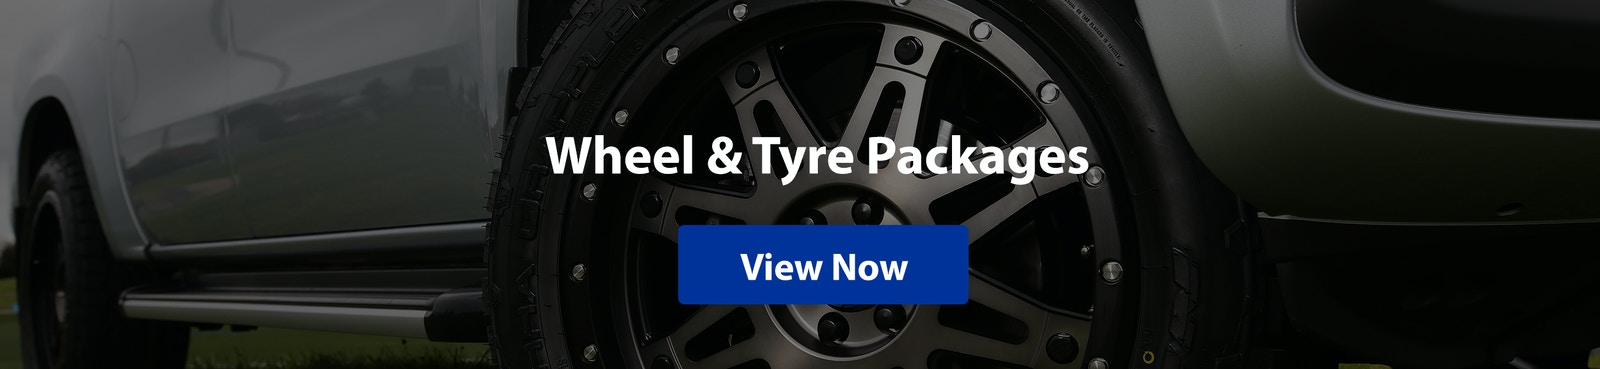 Wheel and Tyre packages Bob Jane t-Marts